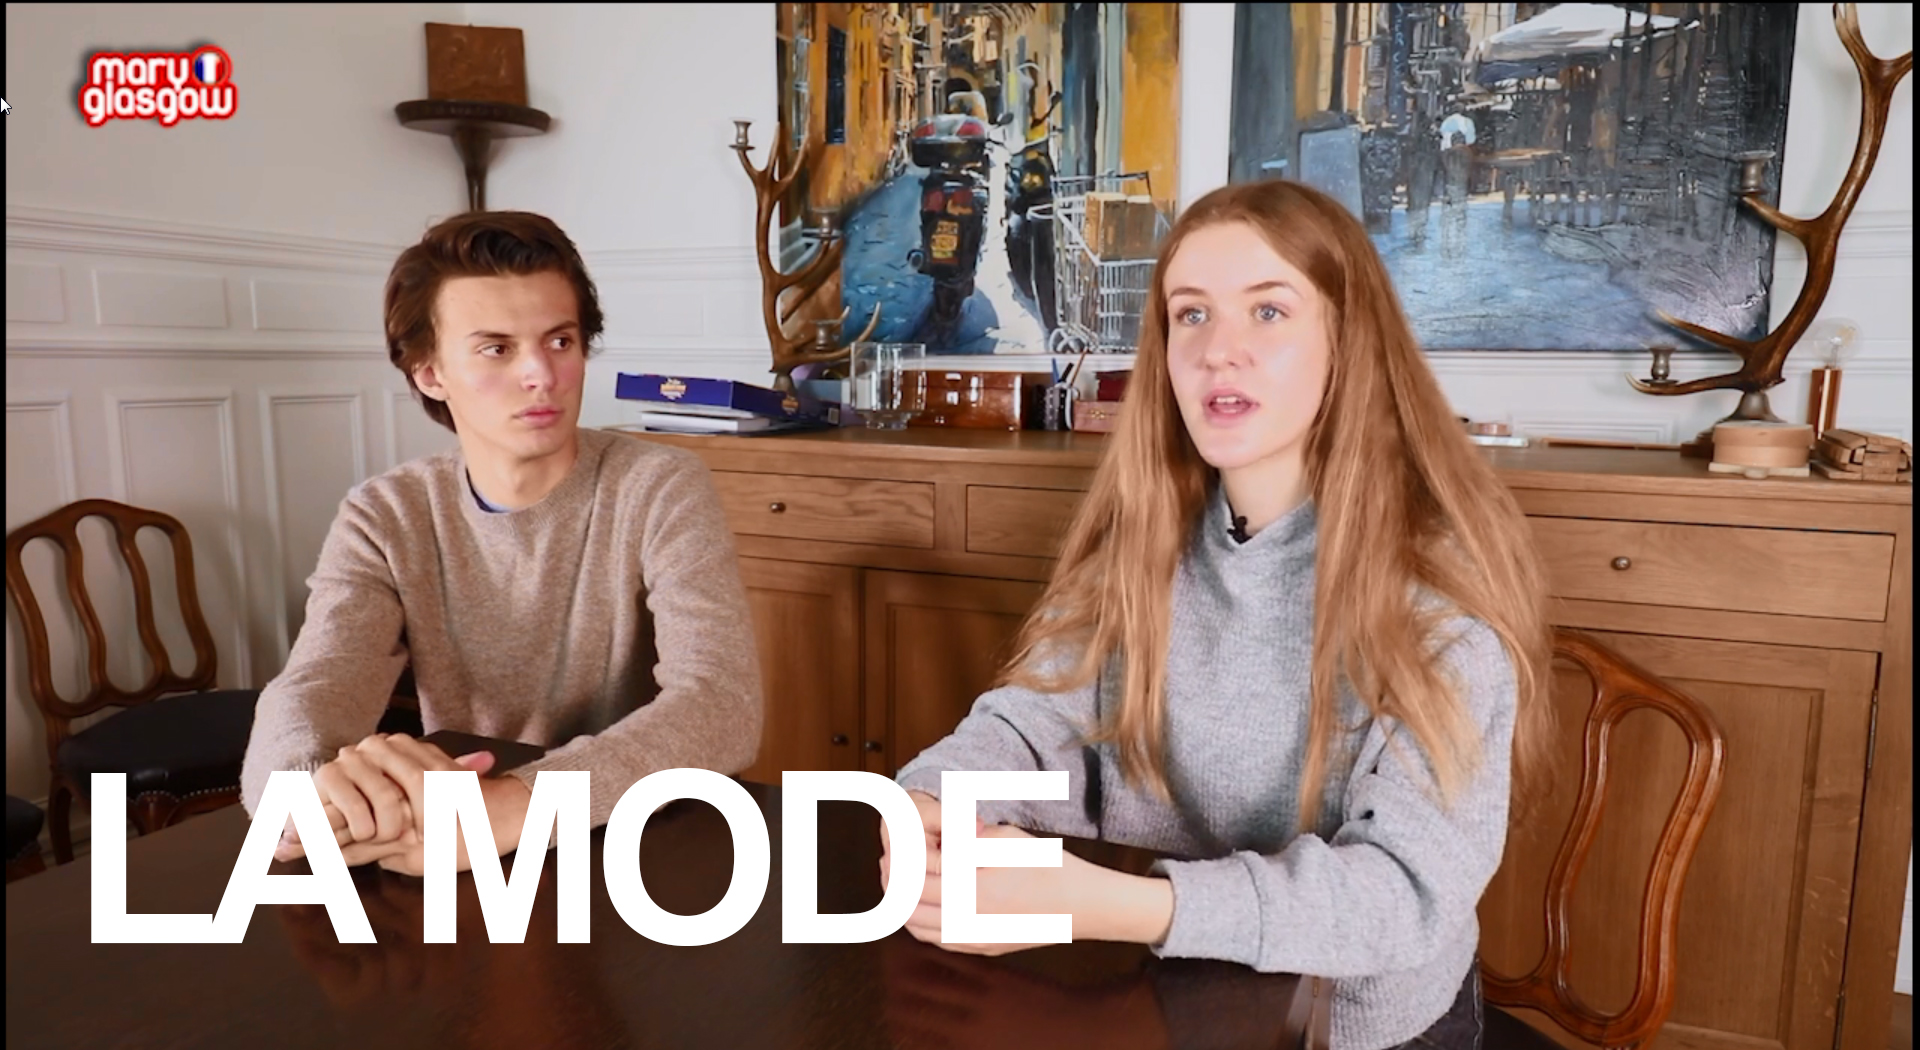 La mode screenshot